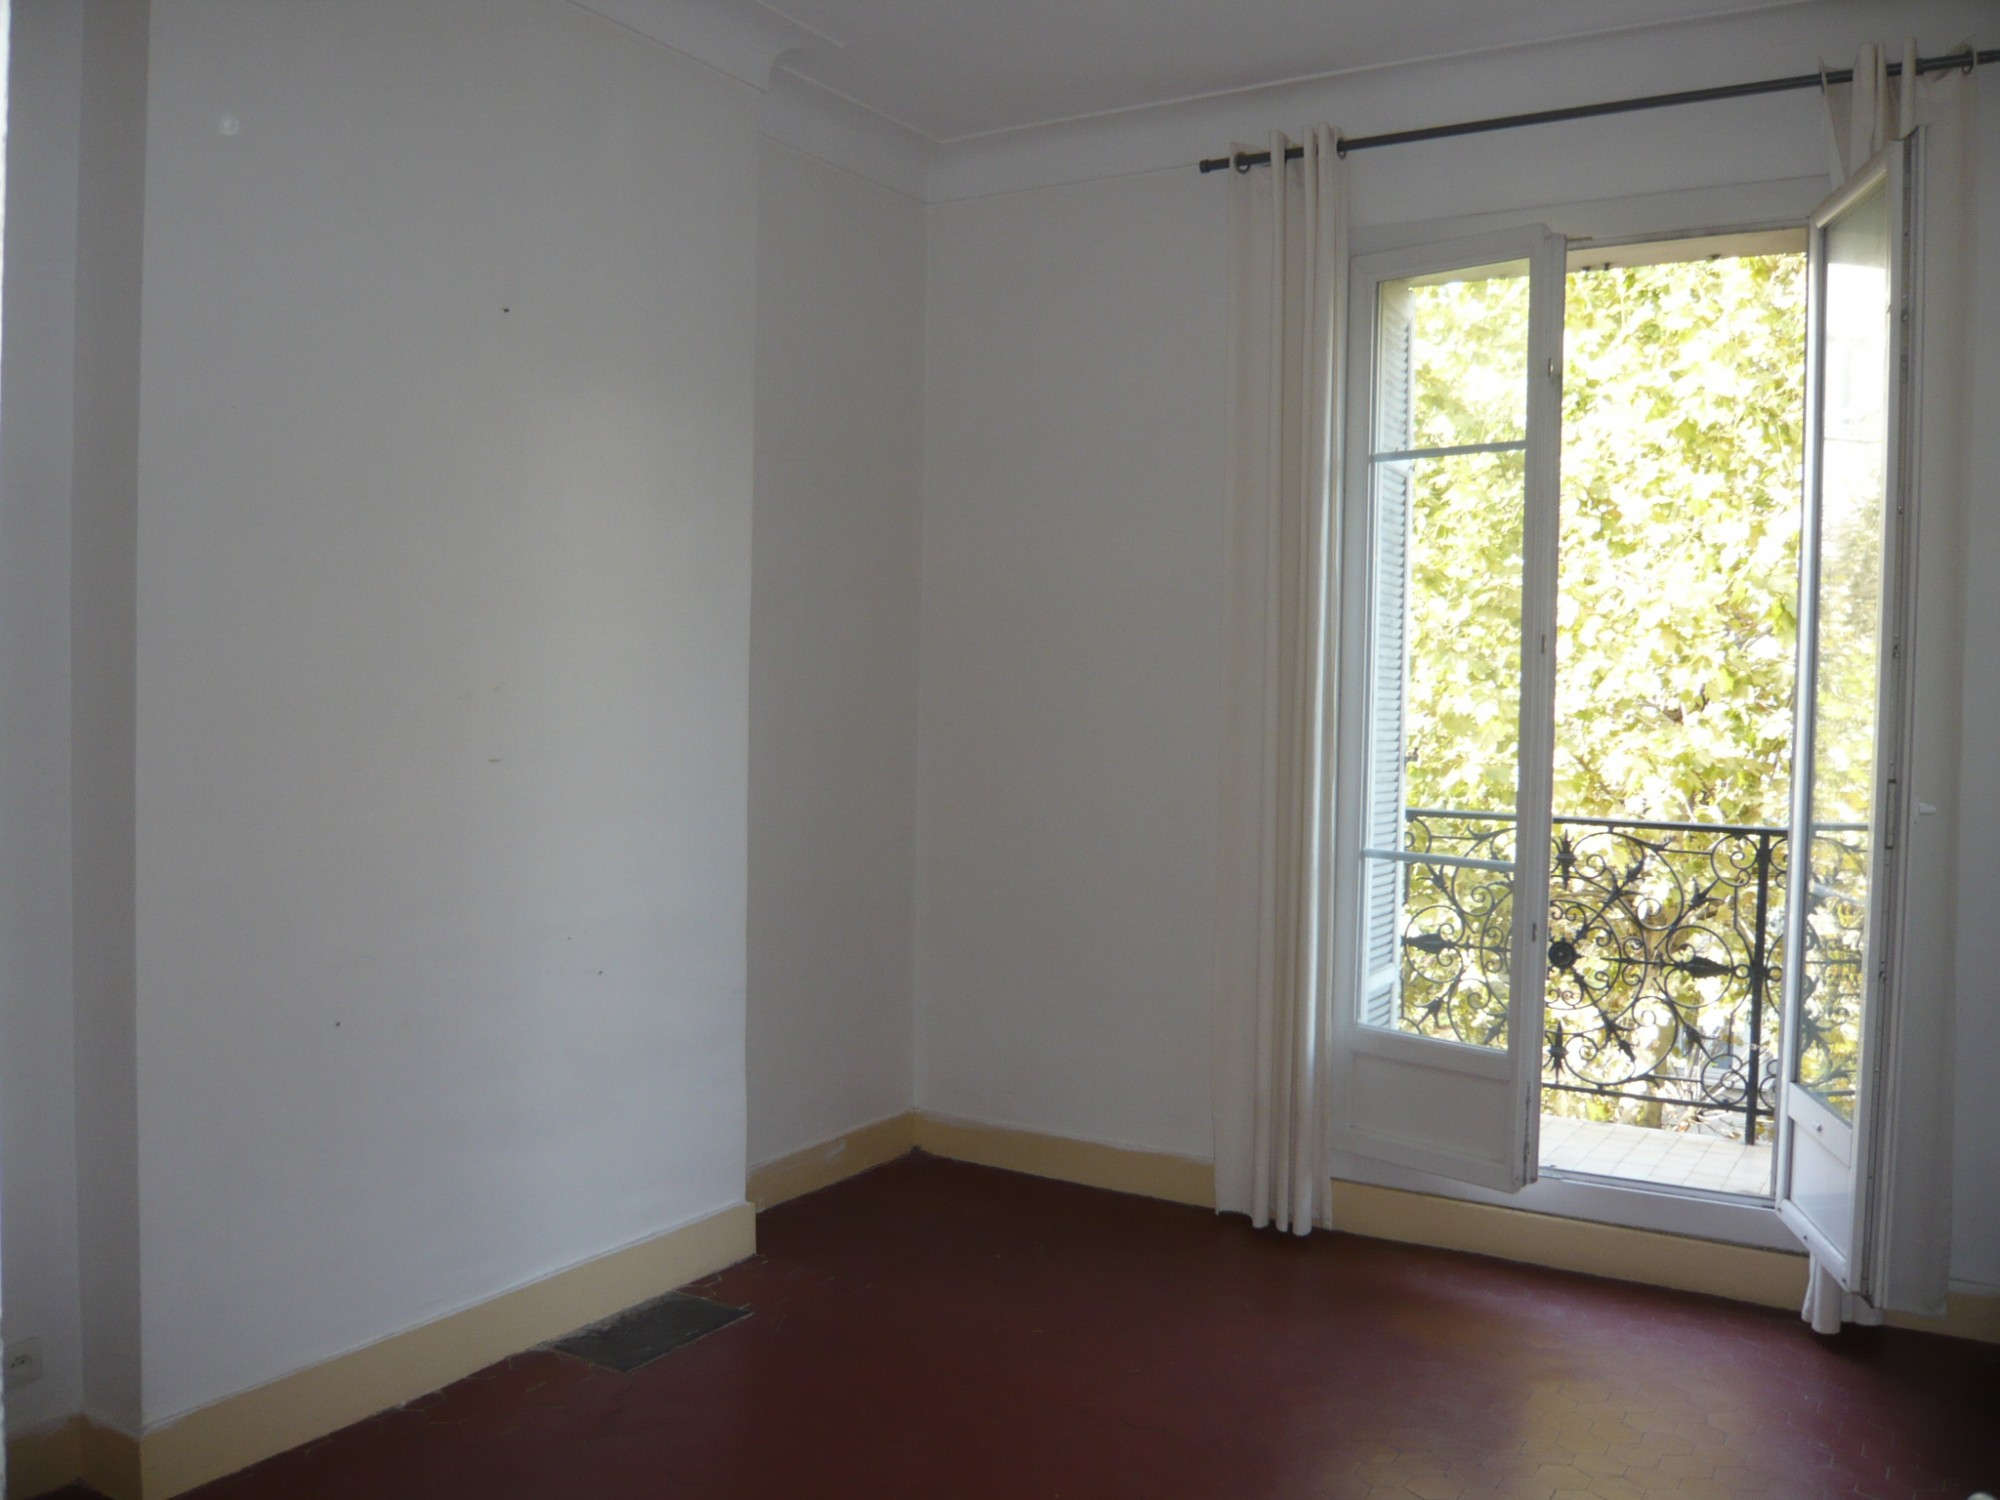 Ventes appartement tt2 ft2 marseille 13007 quartier for Appartement terrasse 13007